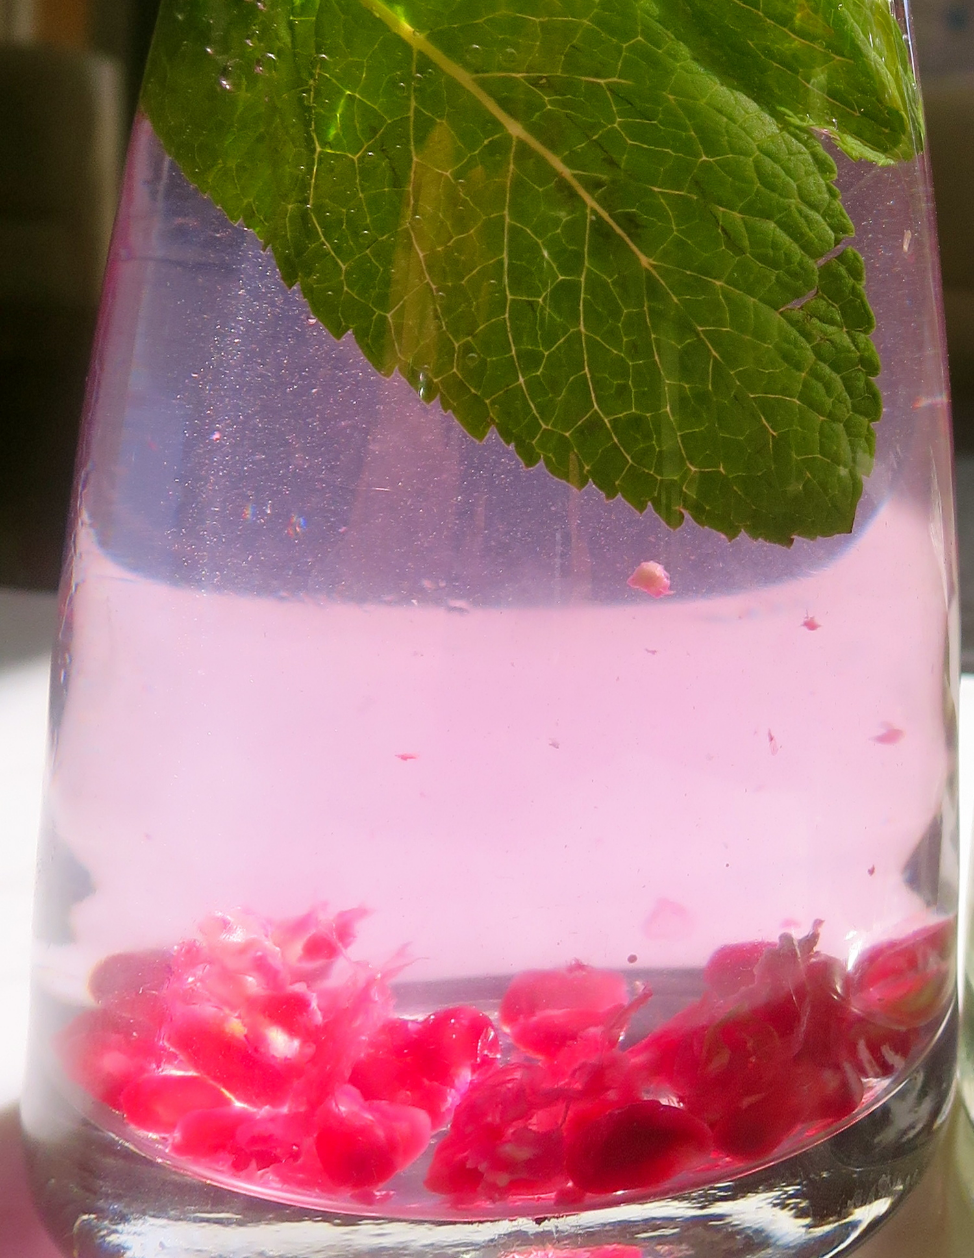 Pomegranate and Mint.